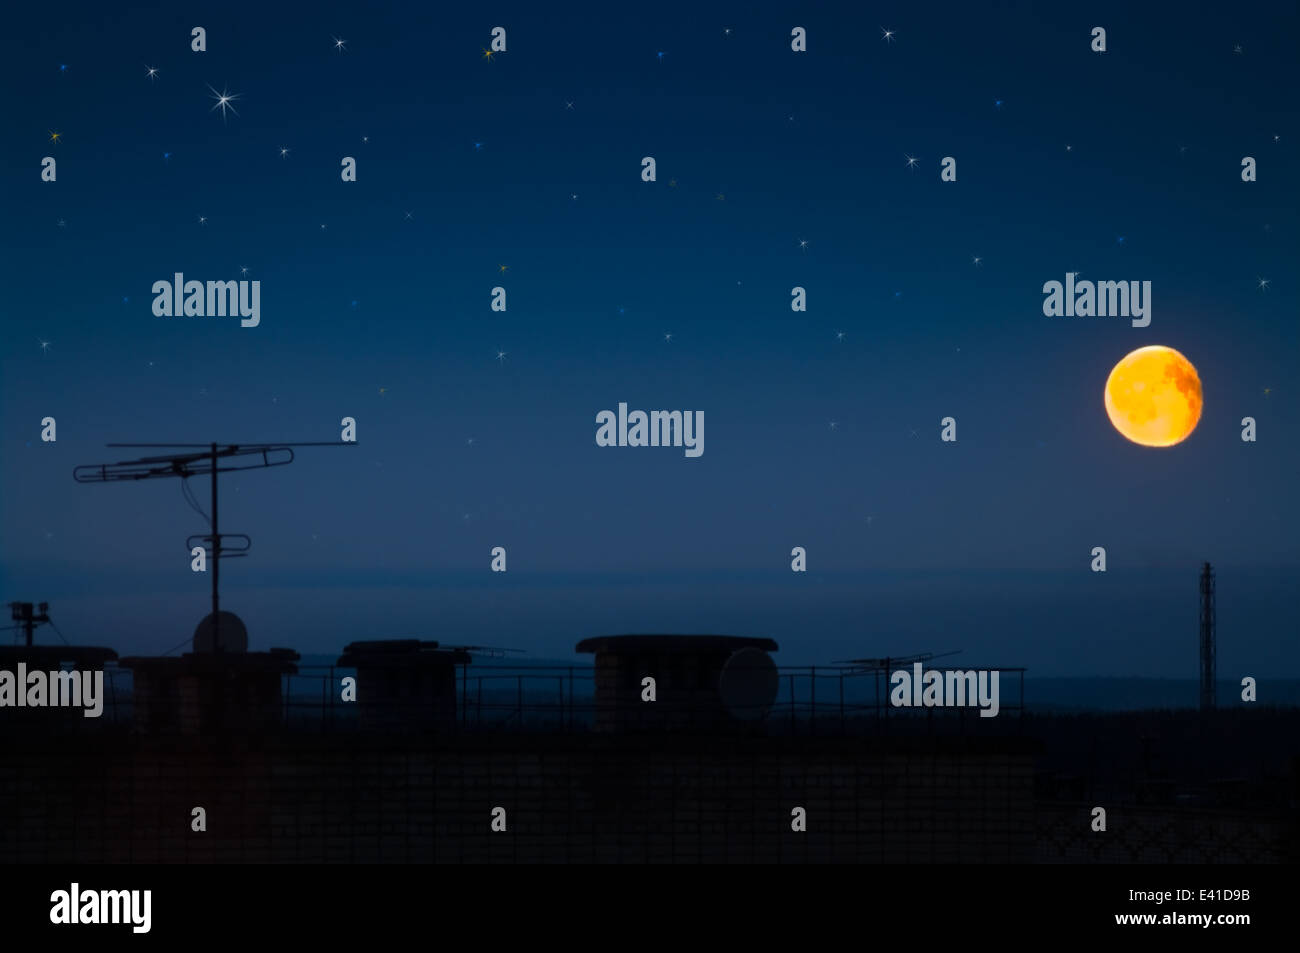 Roofs of modern buildings with moon and shine stars - Stock Image